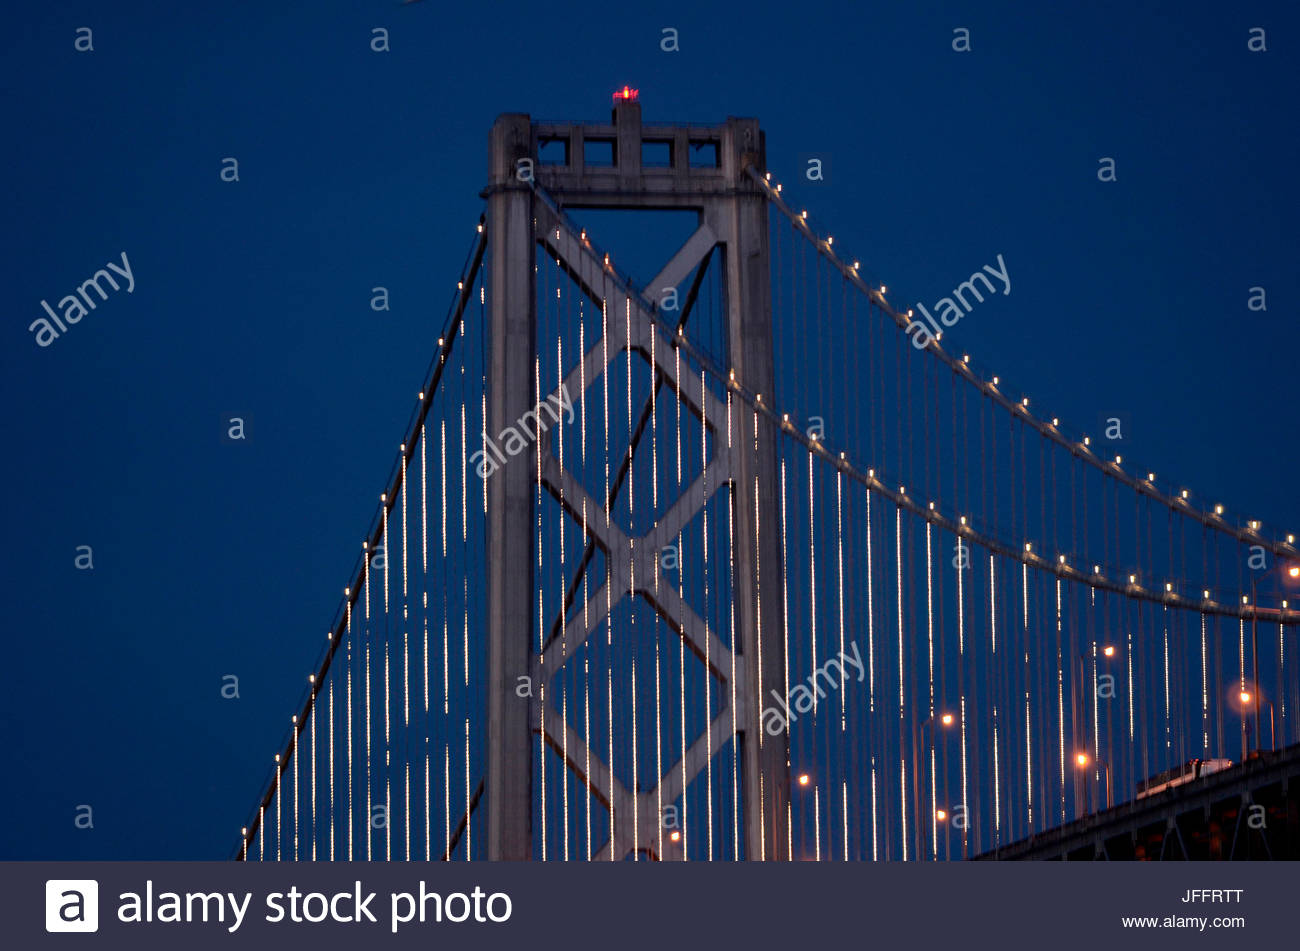 The Bay Lights is an iconic light sculpture designed by world-renowned artist Leo Villareal. This stunning fine - Stock Image